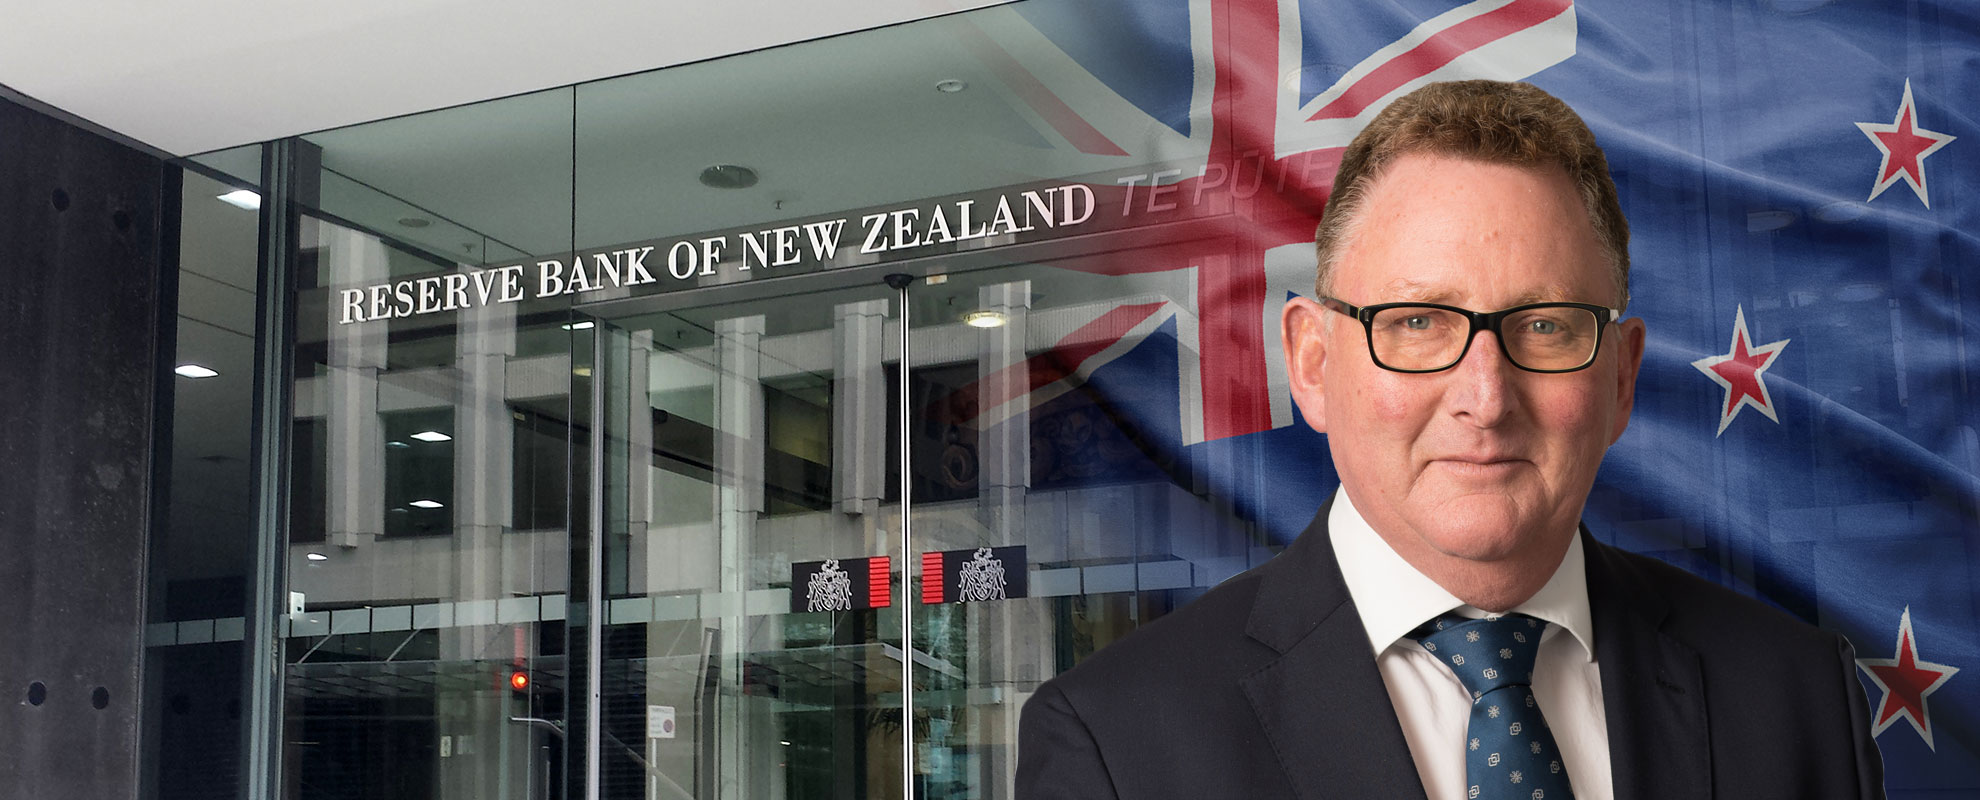 RBNZ Aggressive Easing Sinks NZD